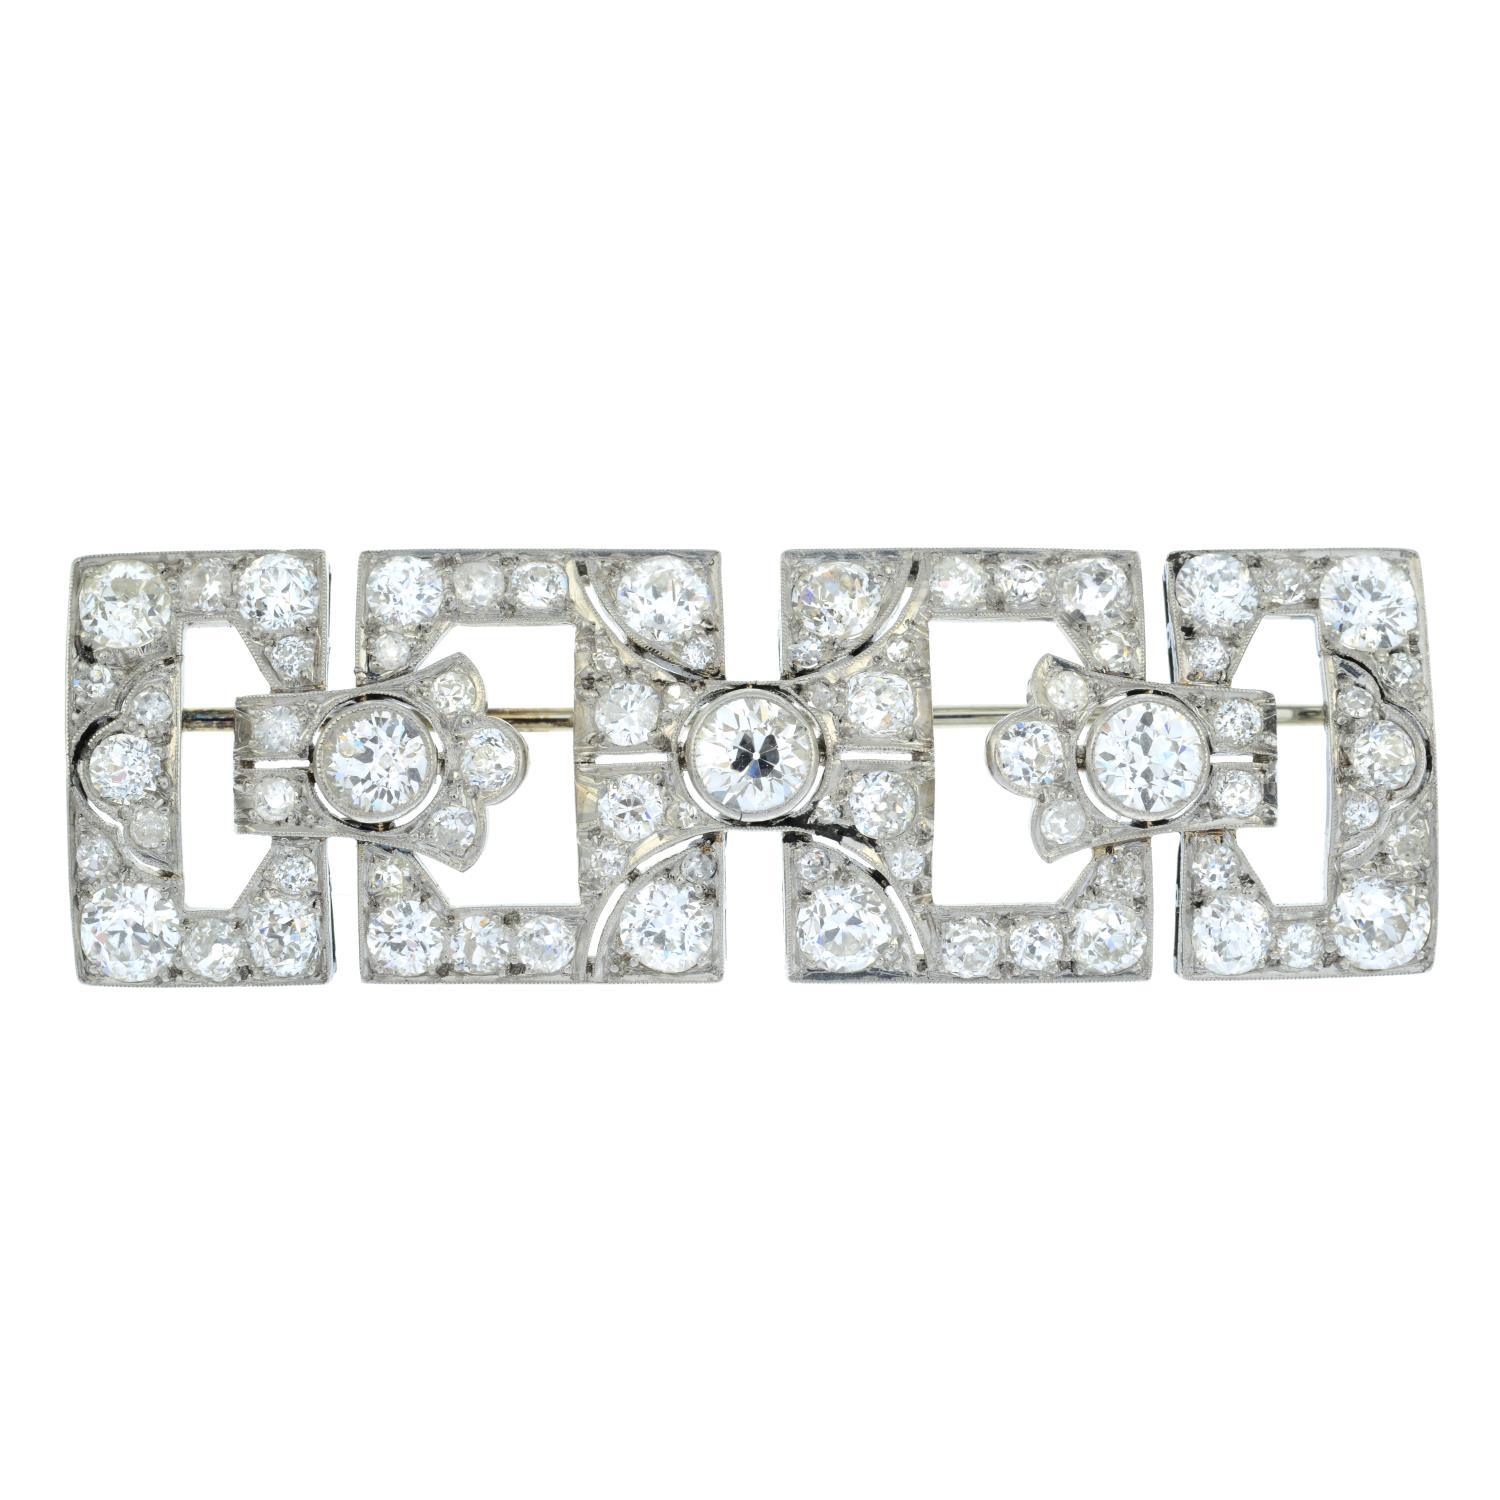 An Art Deco platinum and gold old-cut diamond geometric brooch. - Image 2 of 4